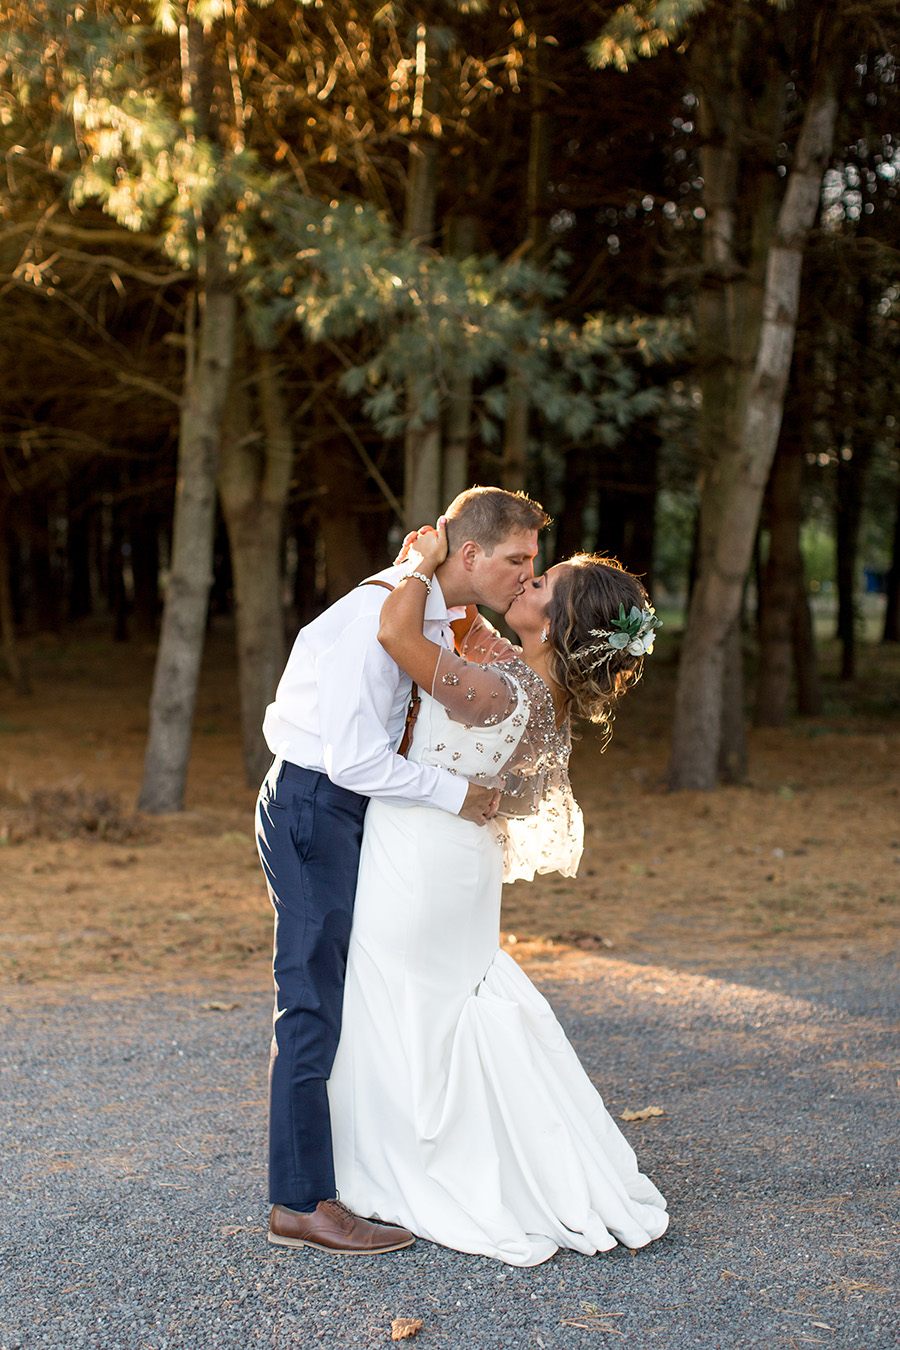 Last kiss on the wedding day